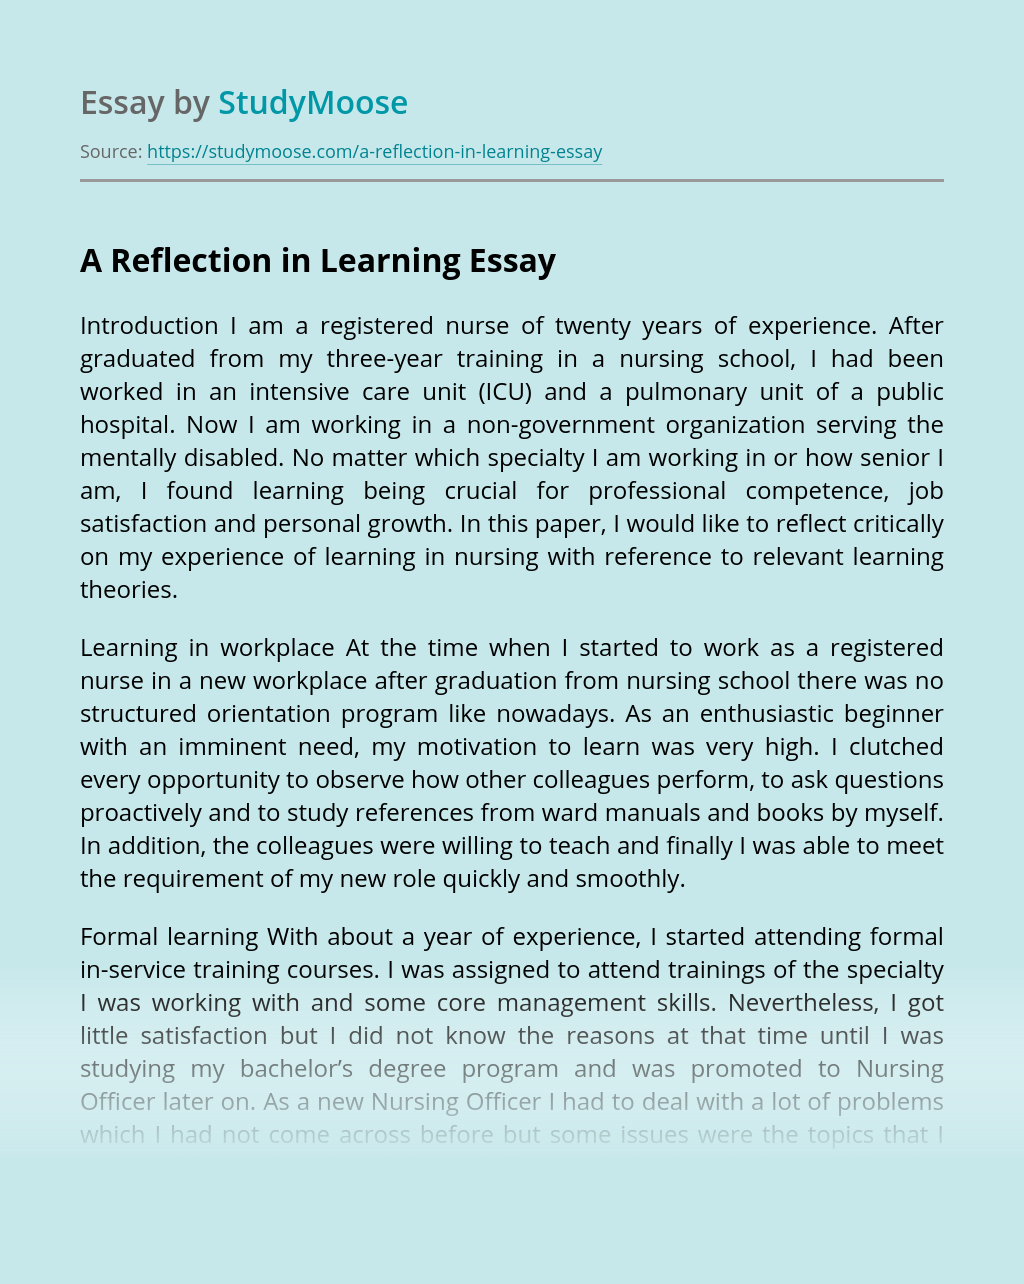 A Reflection in Learning